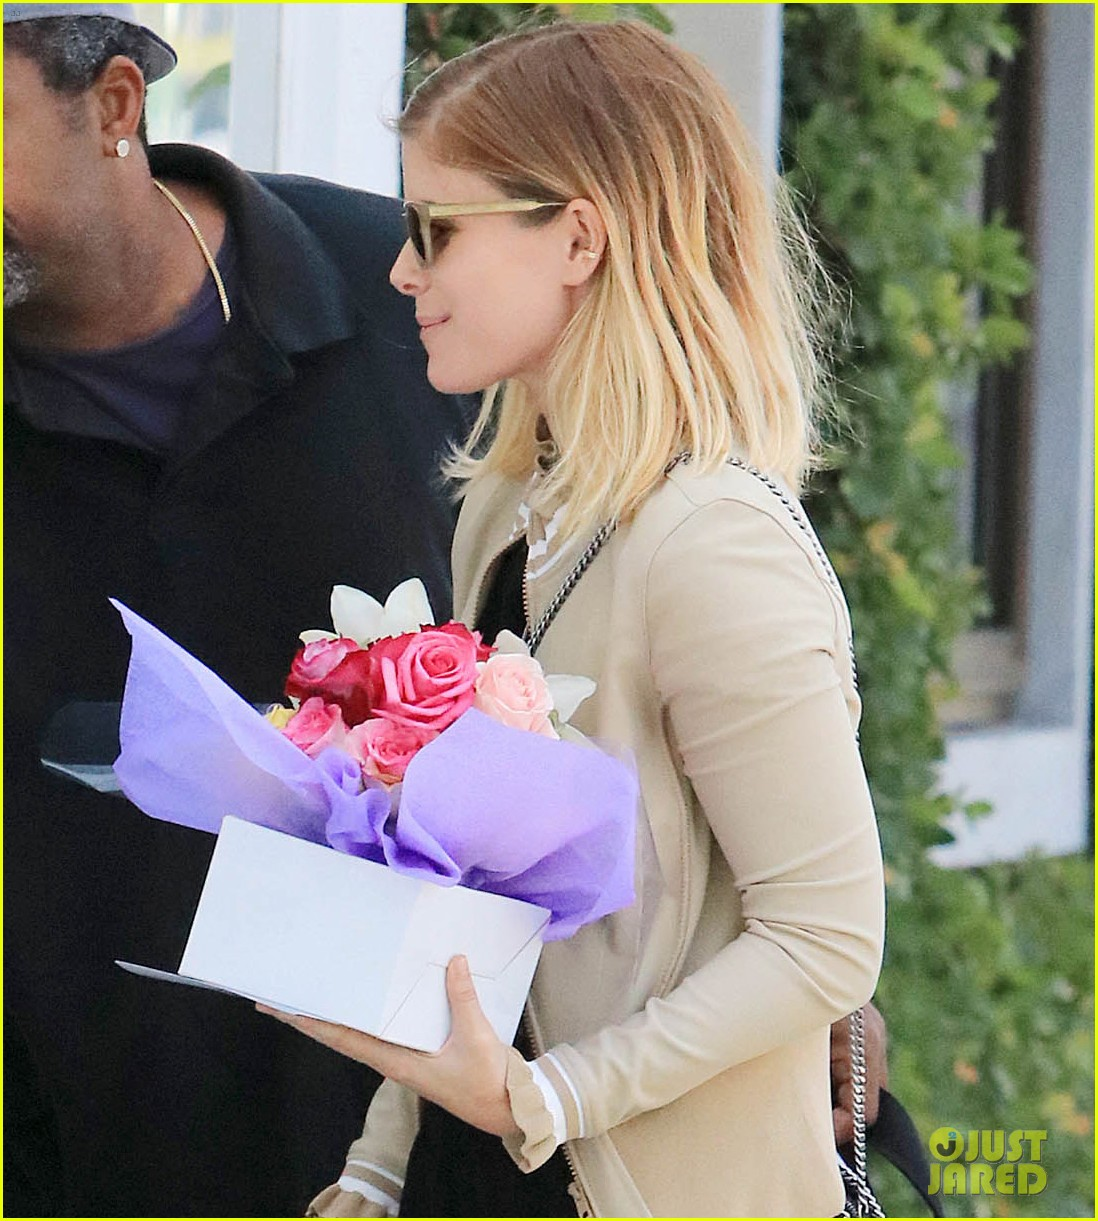 Kate Mara's Movie 'Megan Leavey' is Now Available on iTunes!: Photo